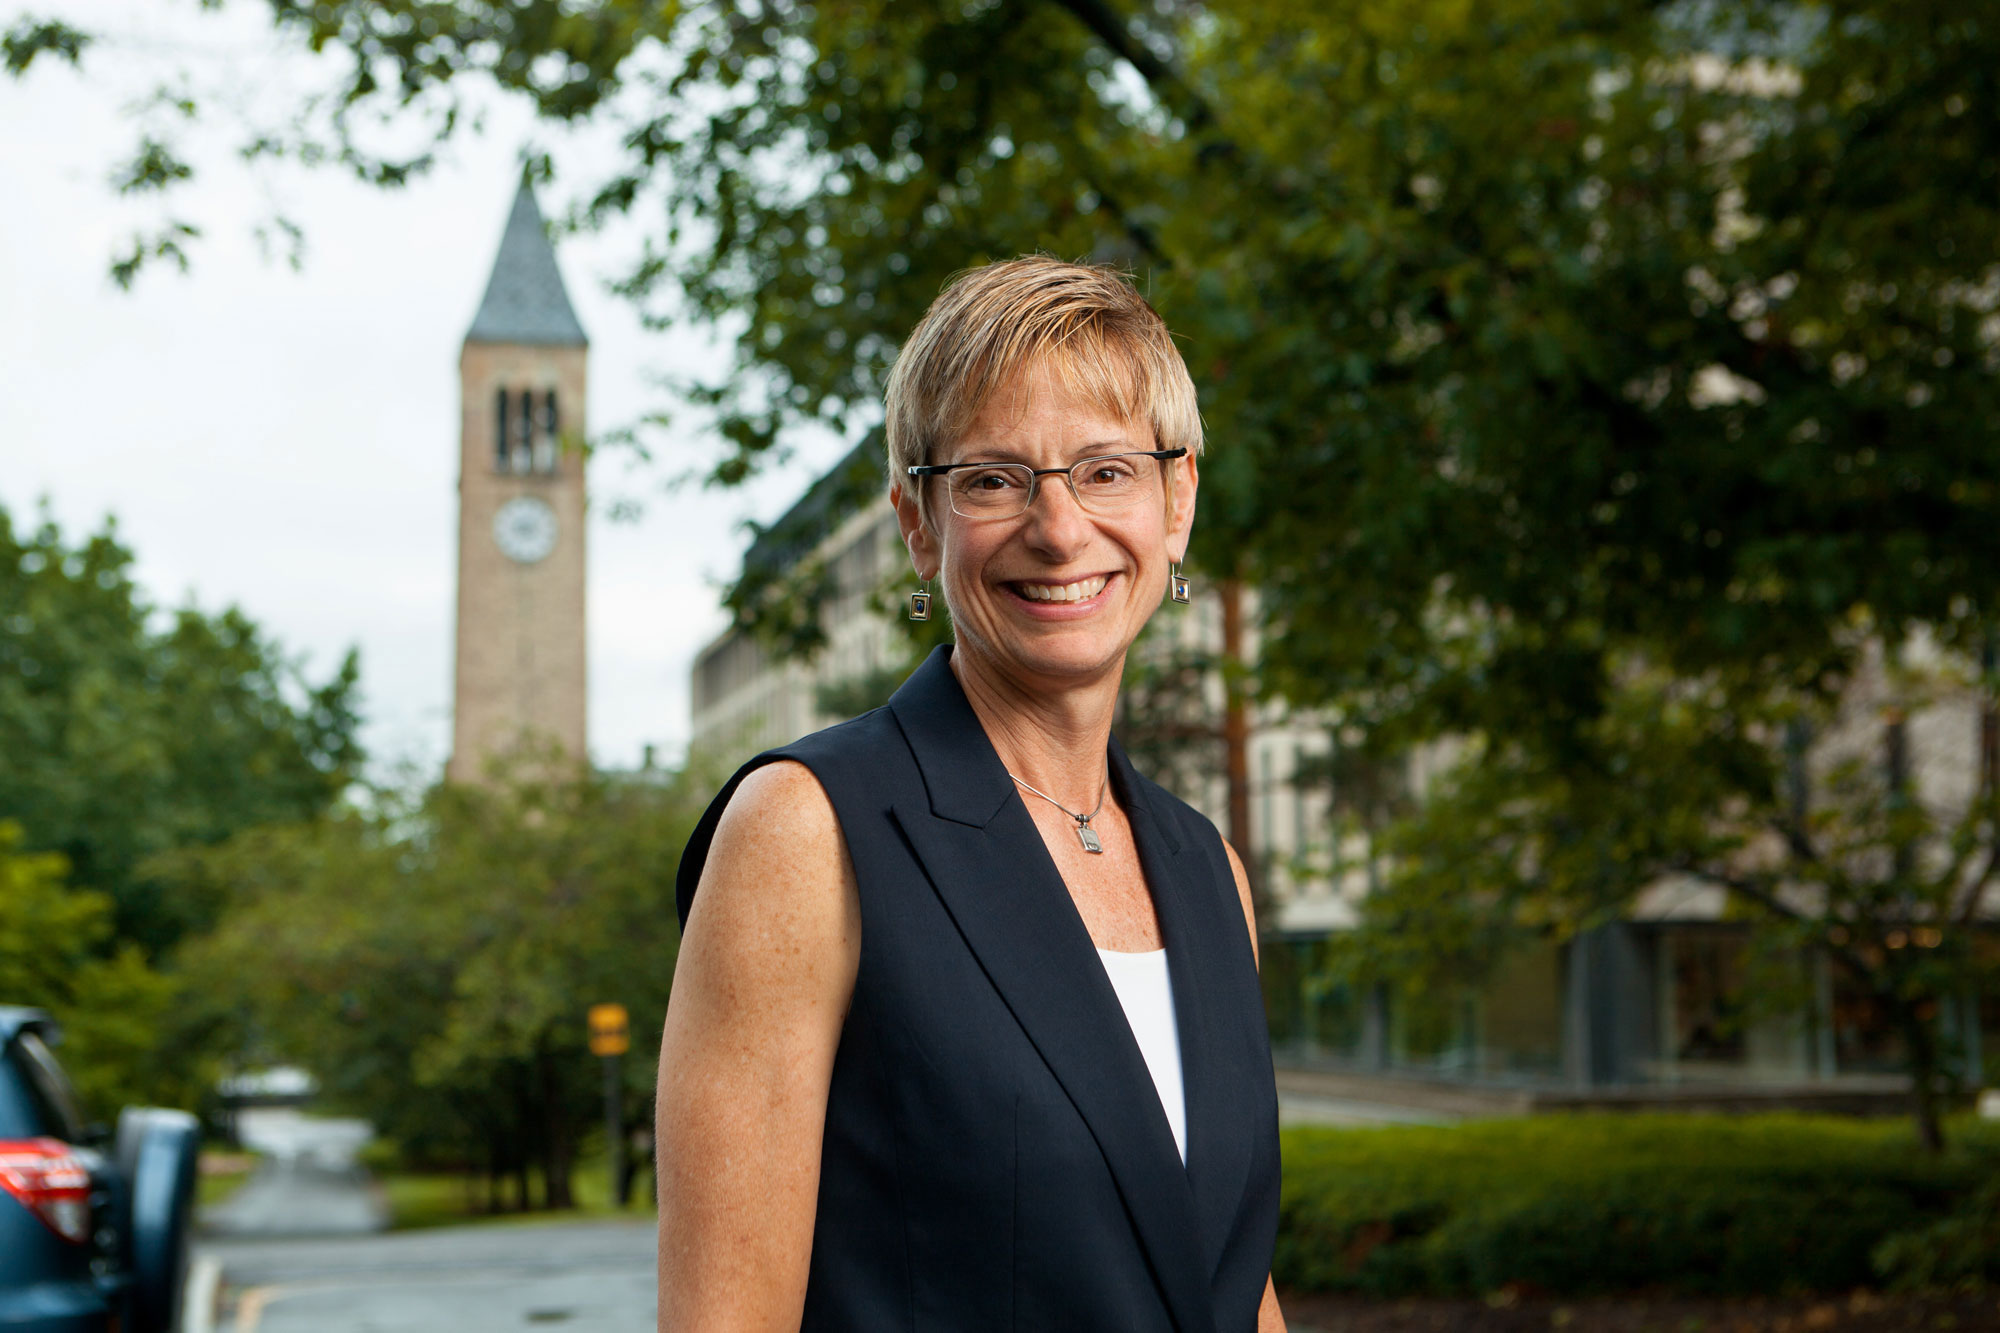 The late Beth Garrett was serving as president of Cornell University when she died in 2016. (Photo courtesy of Cornell University)